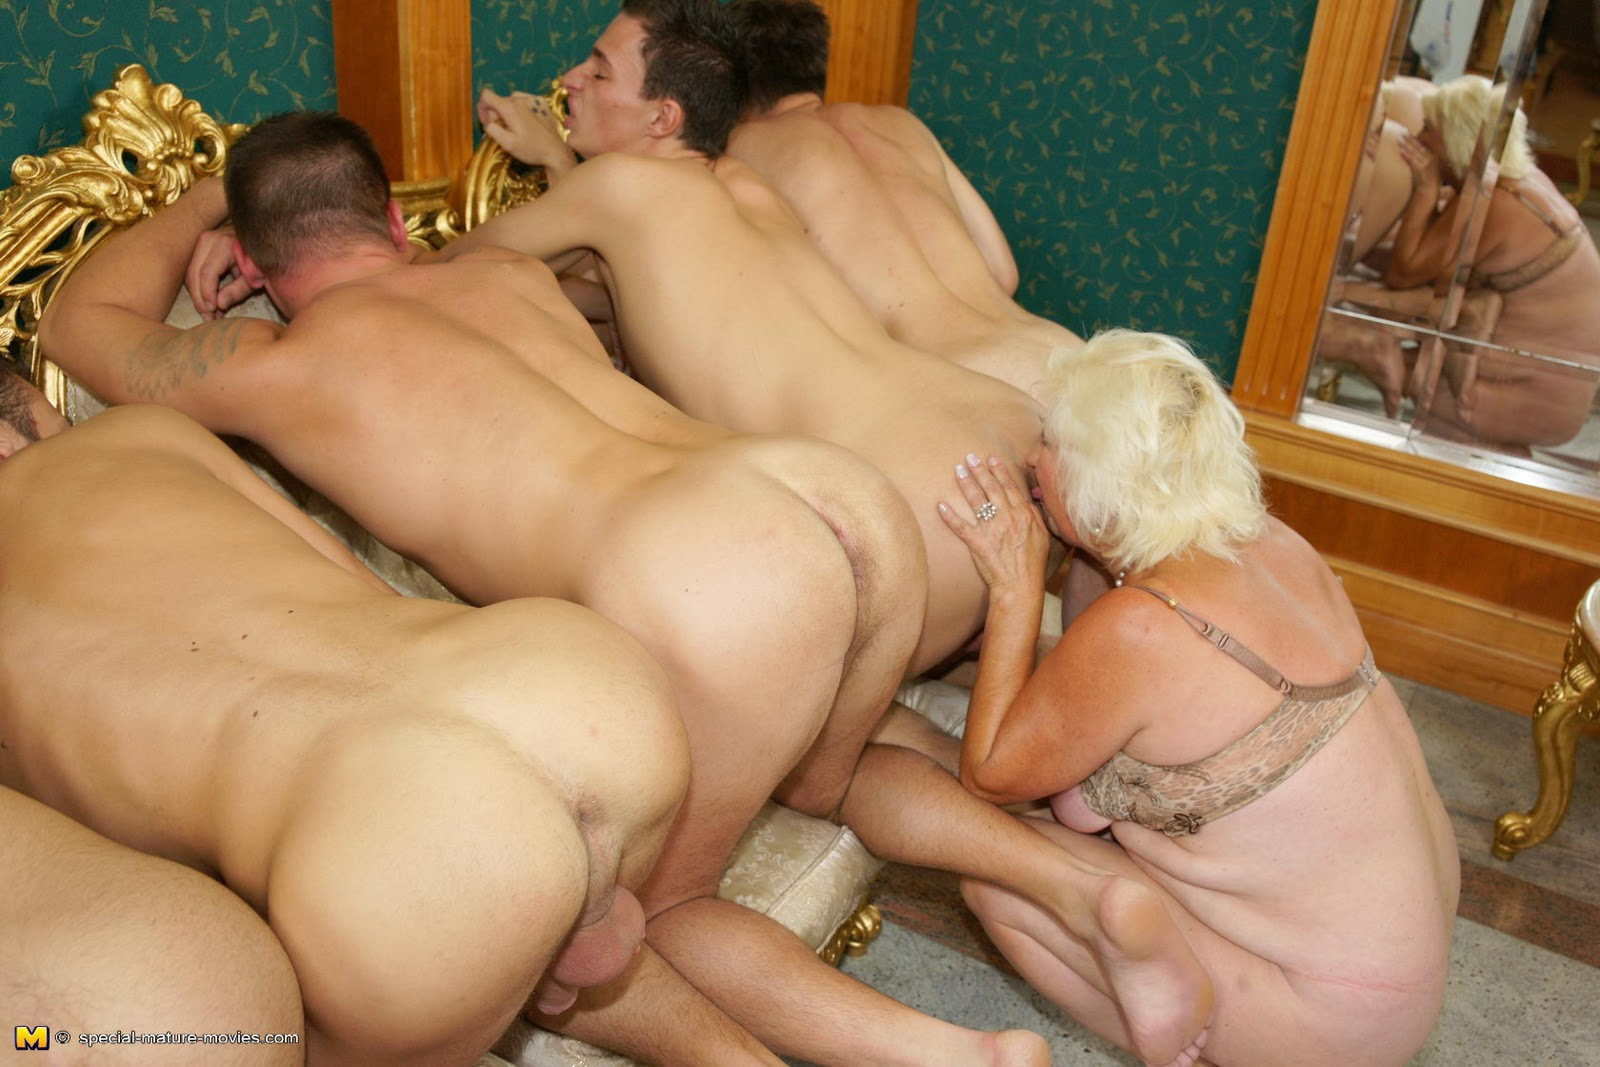 50 guys creampie gangbang hot blonde 8